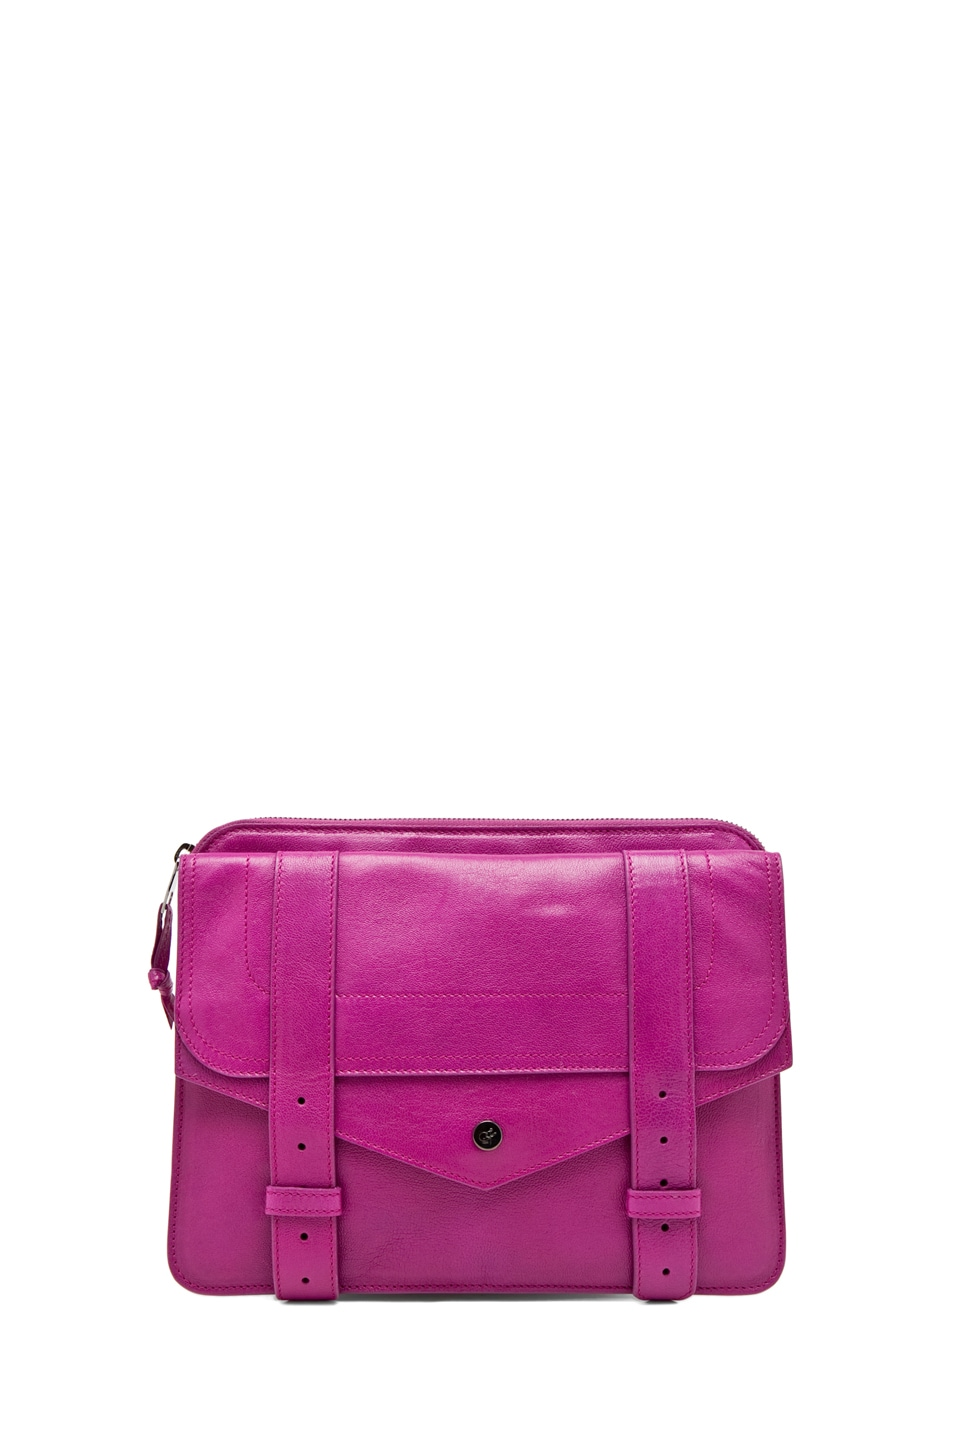 Image 1 of Proenza Schouler PS1 IPad Case in Orchid